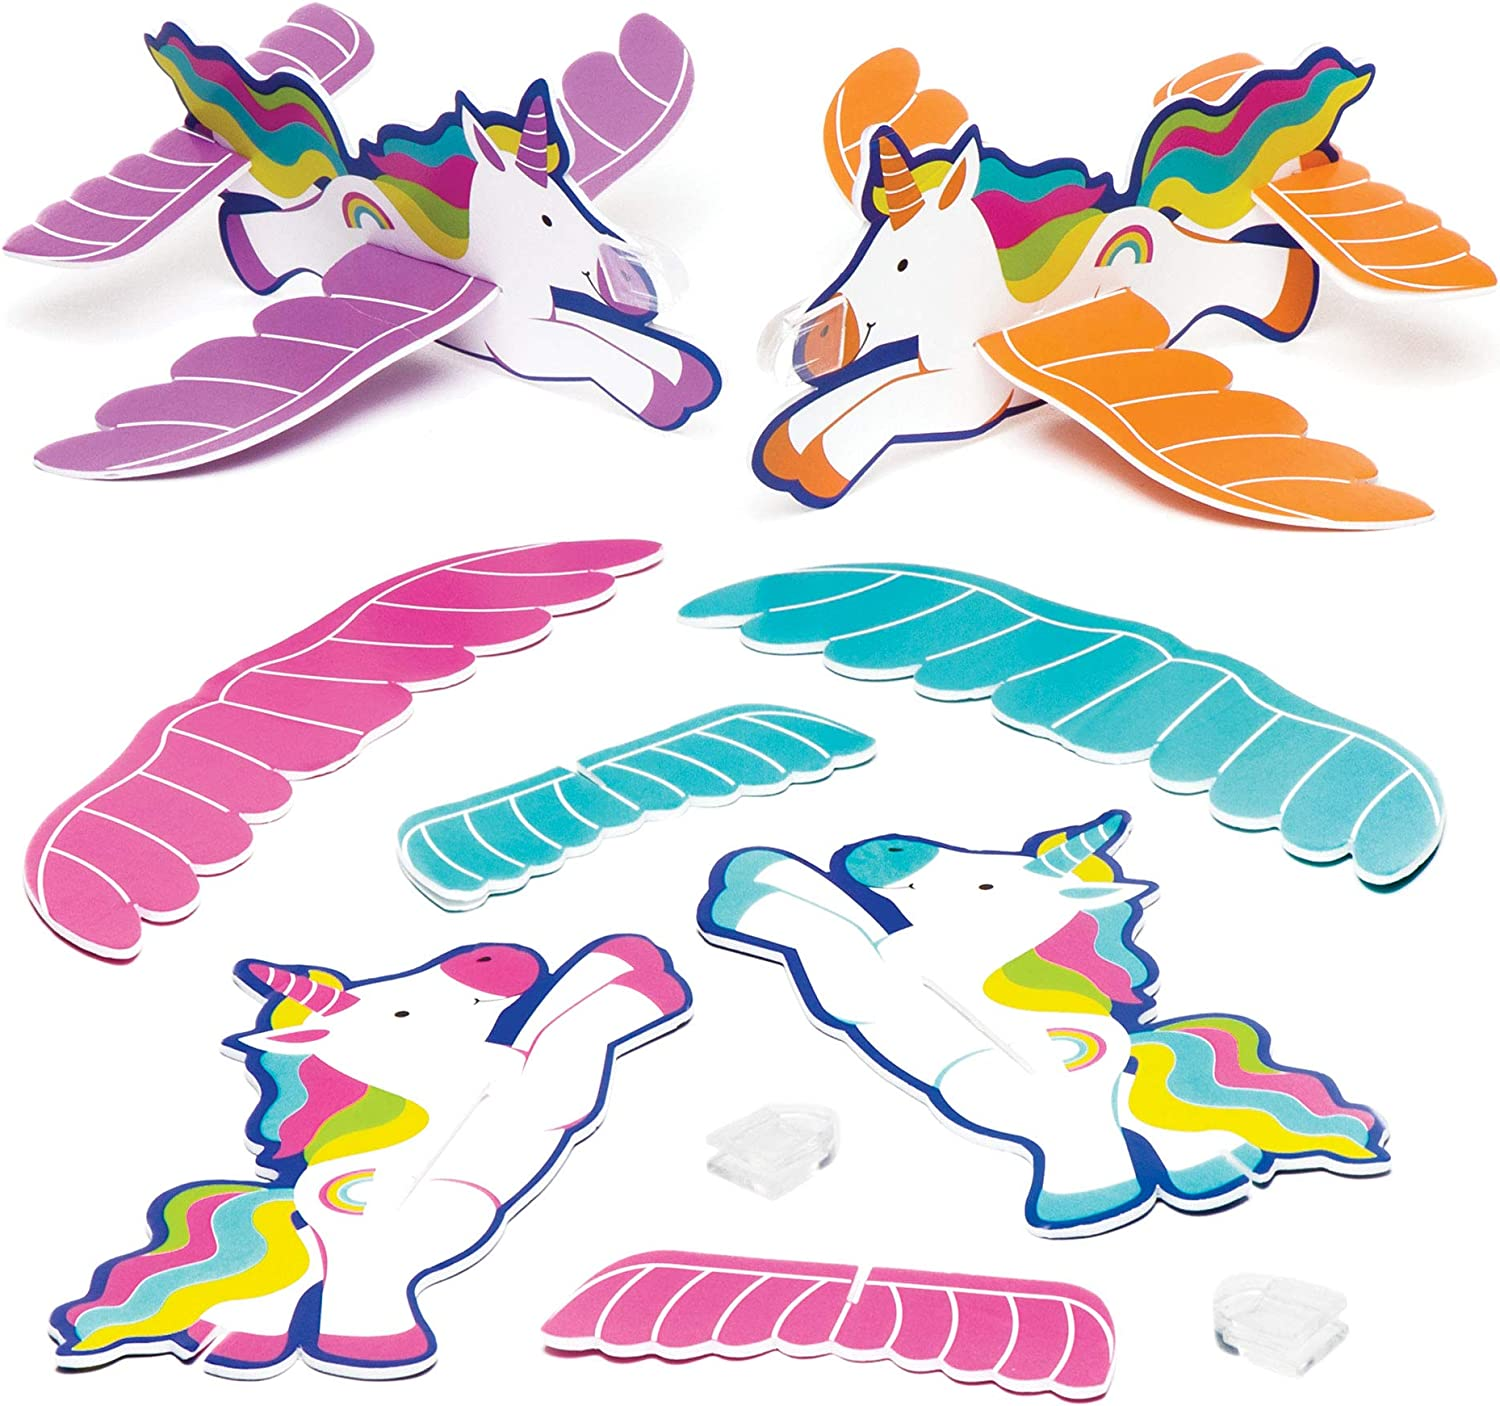 UNICORN FLYING GLIDERS PARTY BAG FILLERS-4 assorted designs-1,4,8,12,16,20,24